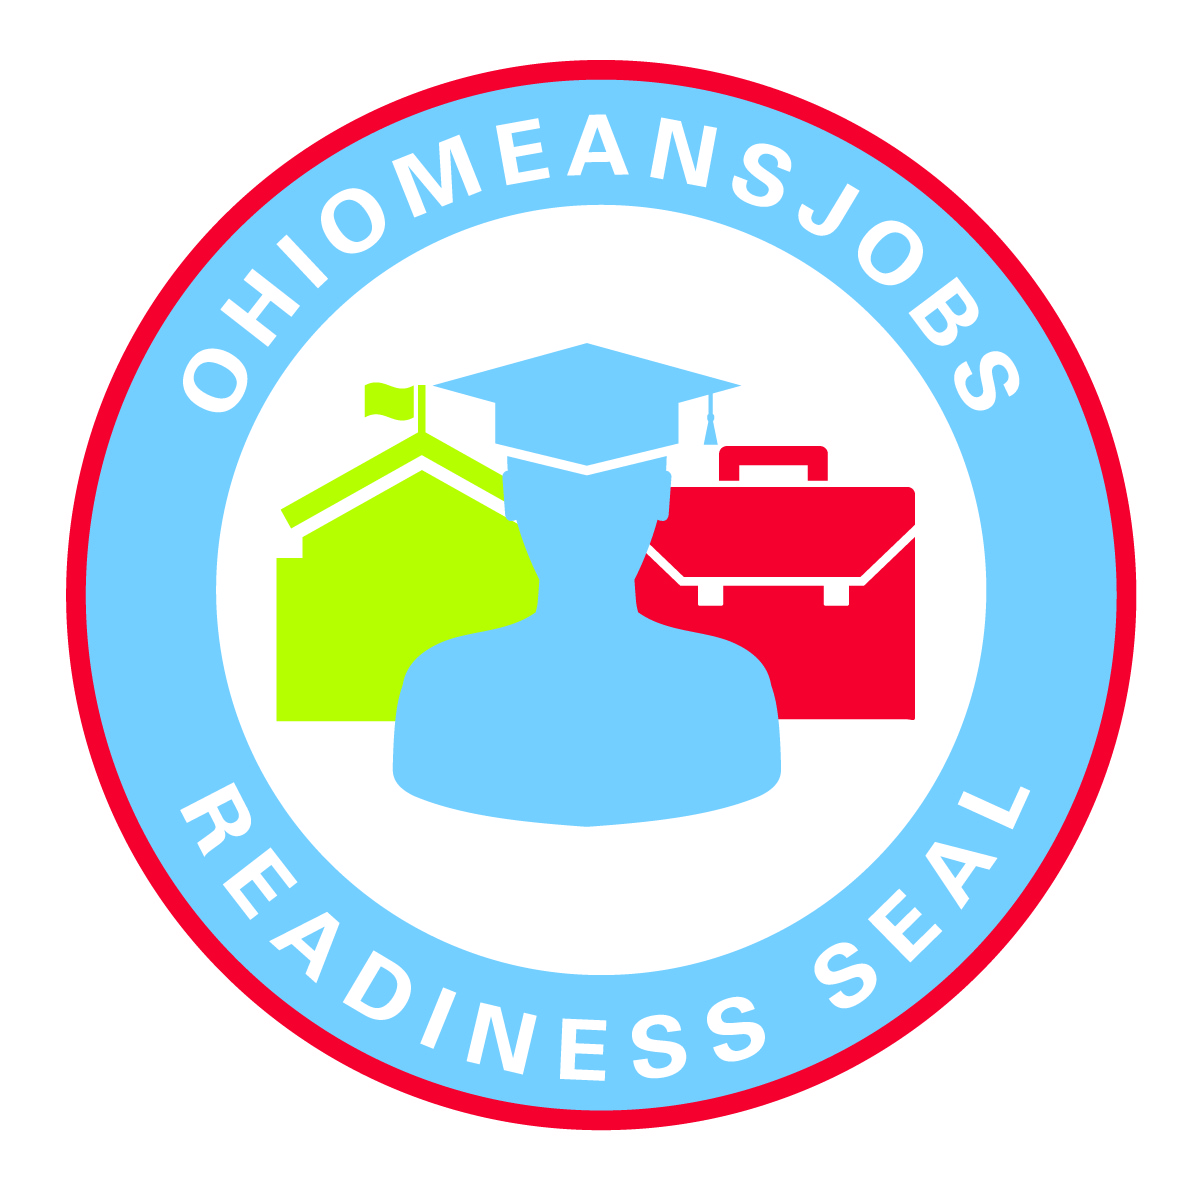 Ohio Mean Jobs Readiness Seal